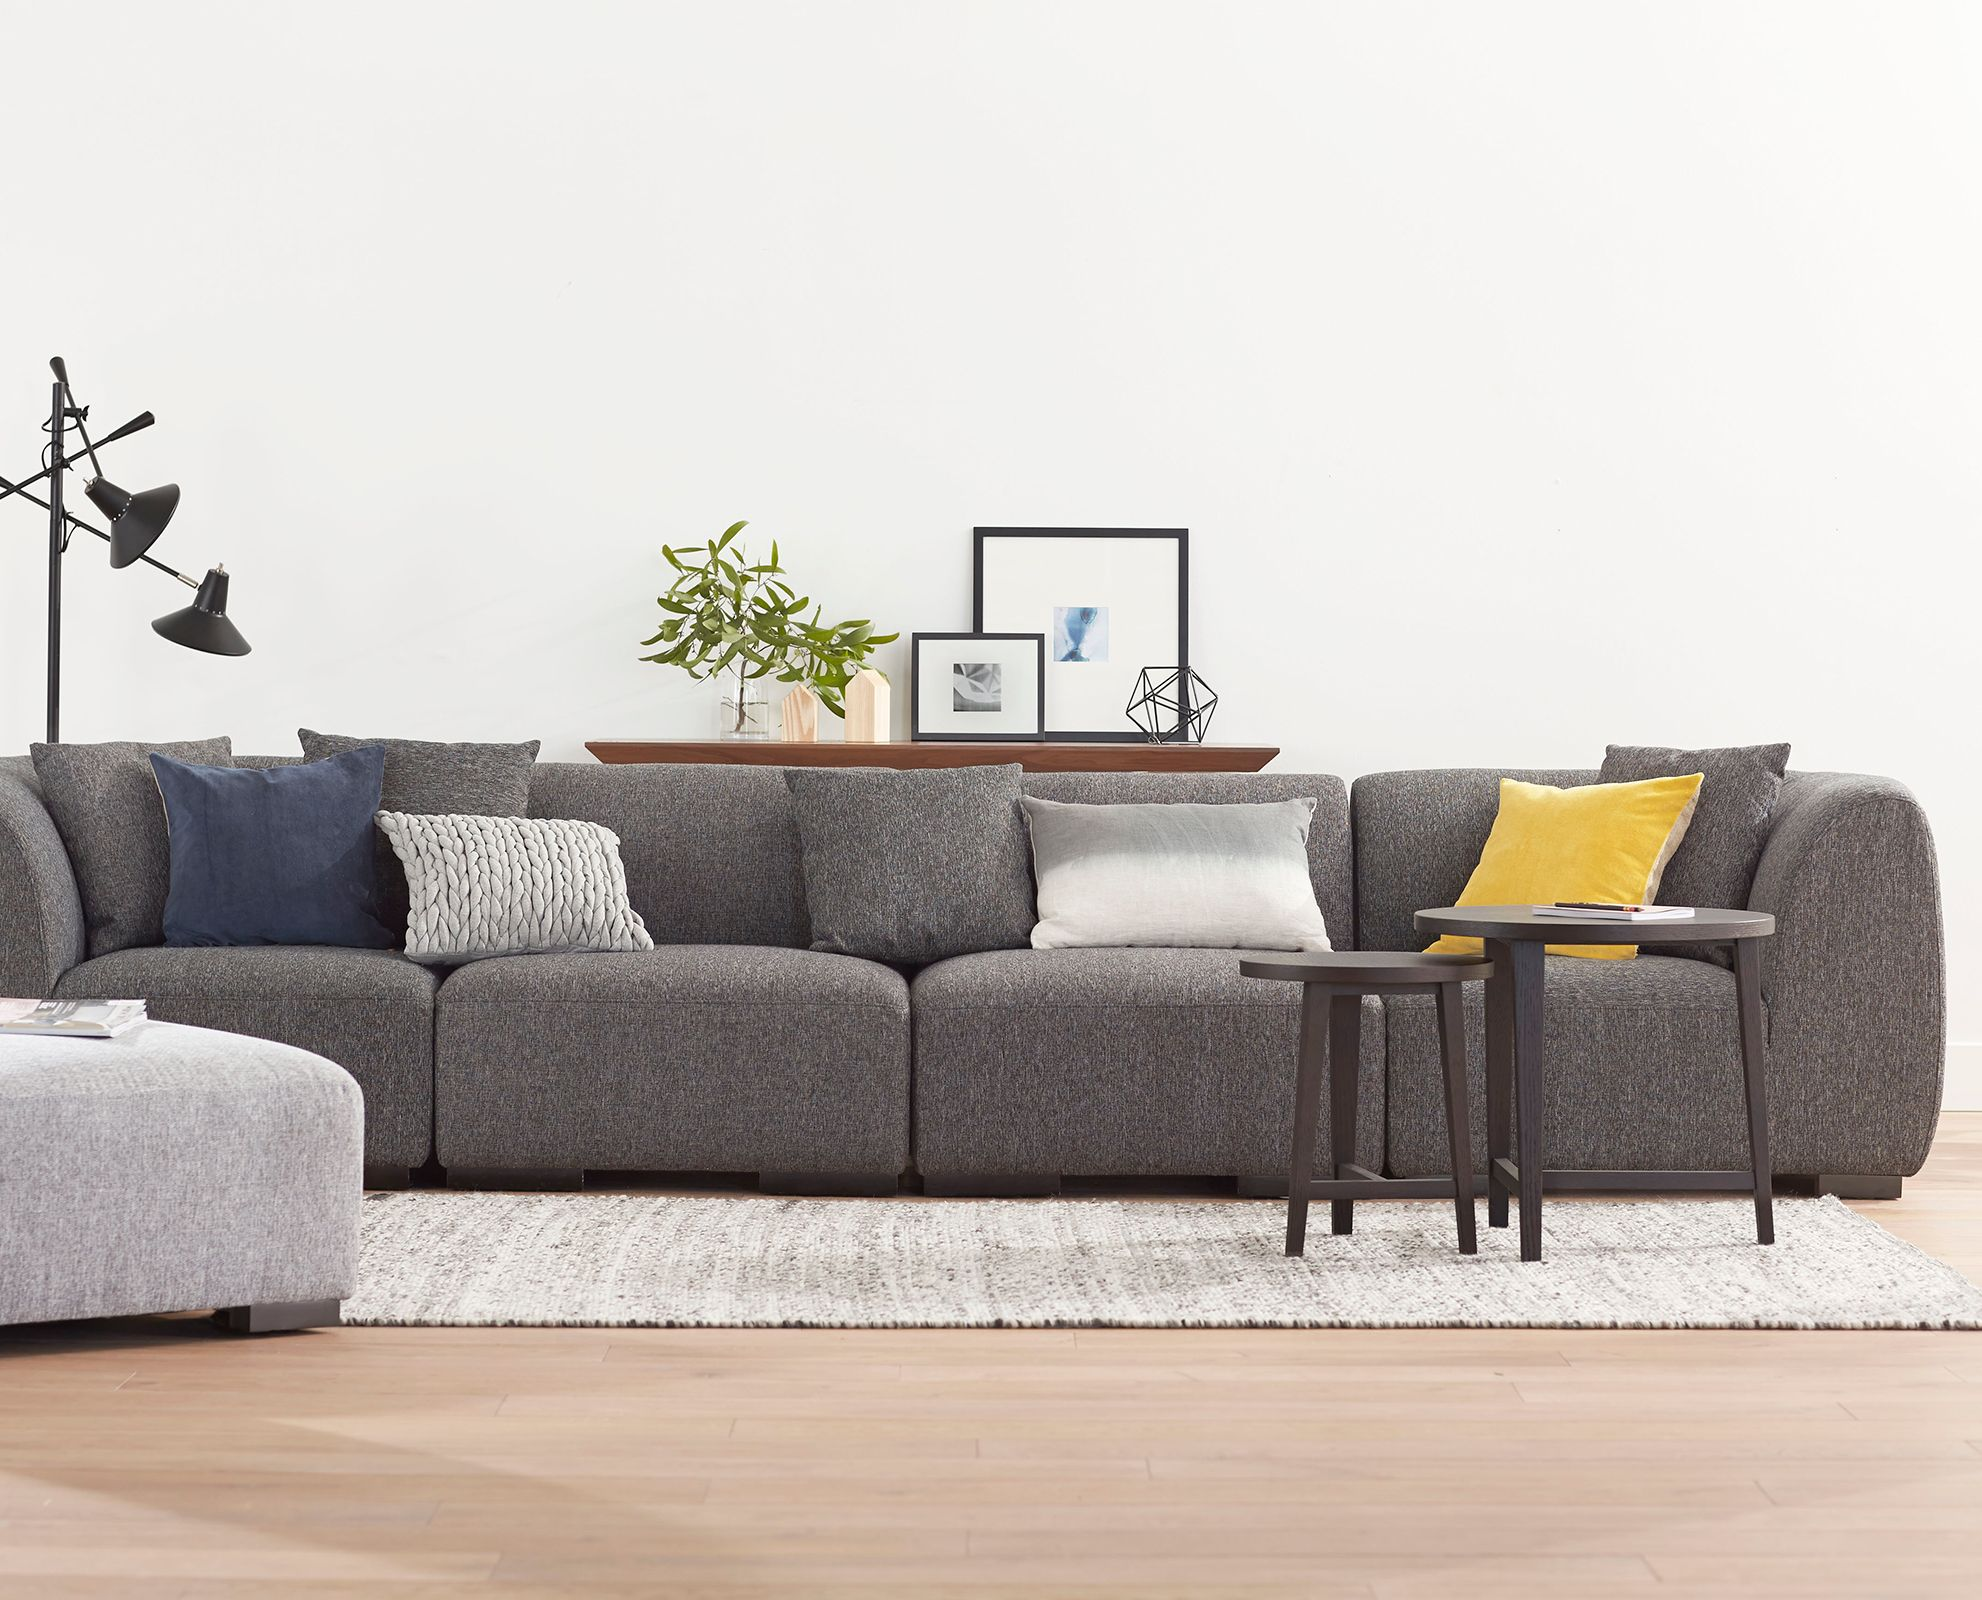 Scandinavian Designs The Kelsey 5 Piece Modular Sectional Offers Countless Seating Arrangem Contemporary Home Furniture Living Room Designs Modular Sectional